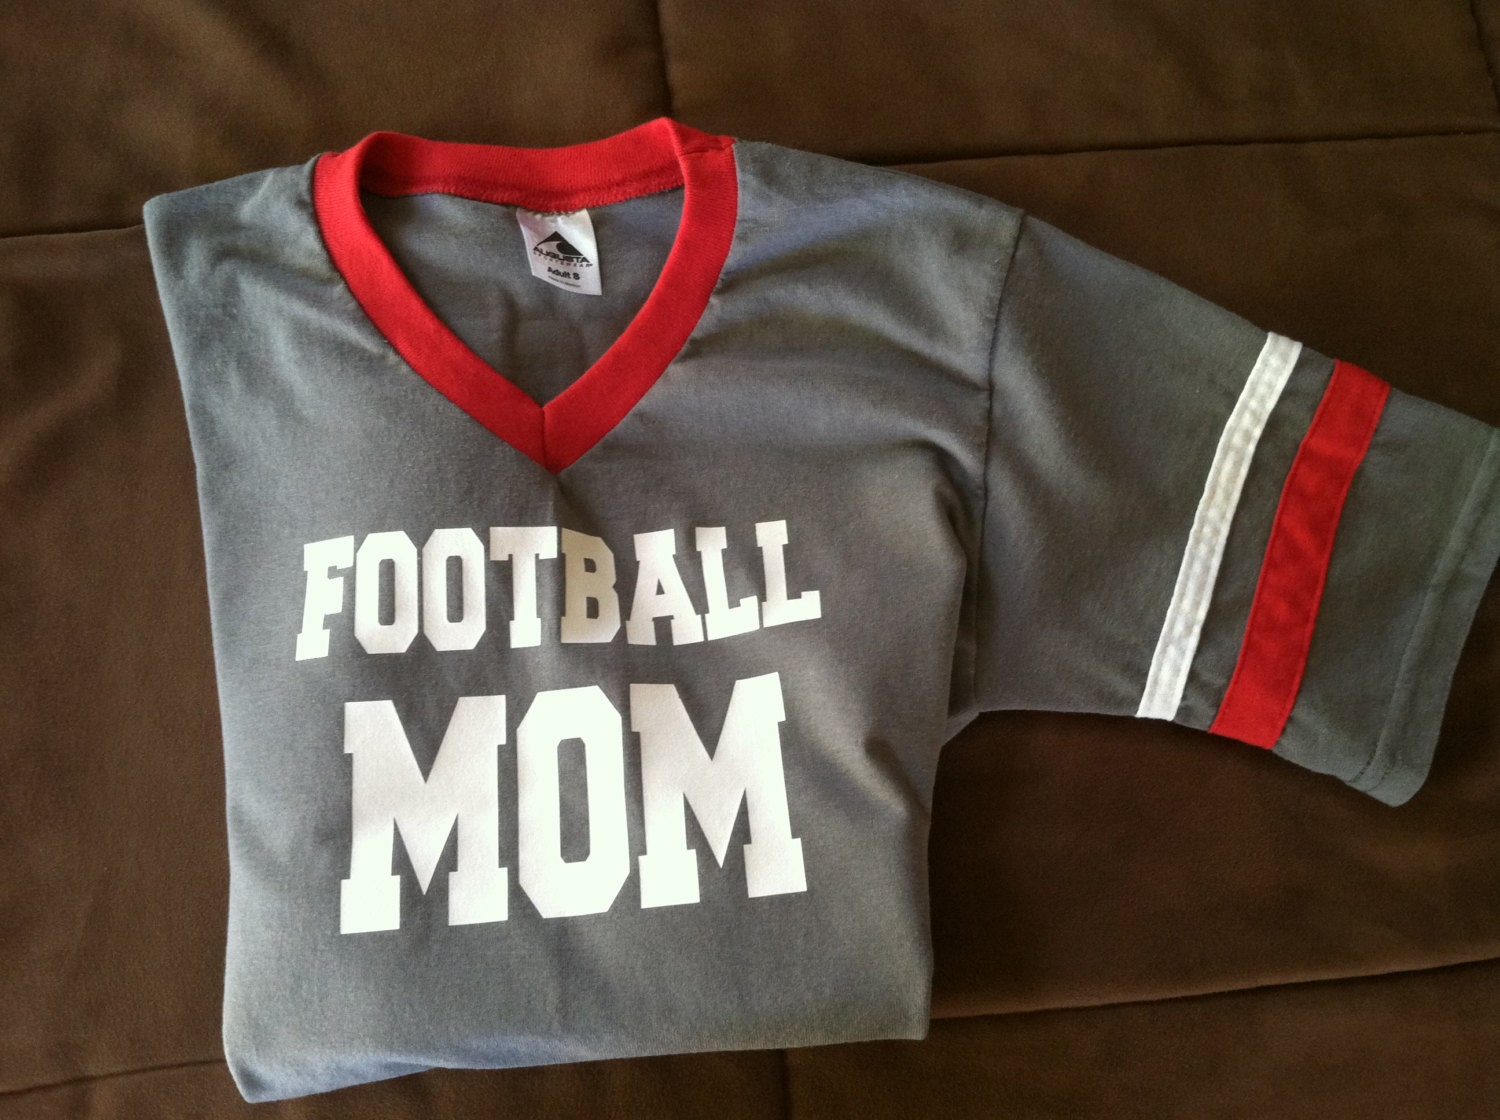 Football mom personalized custom jersey t shirt for Personalized football t shirts